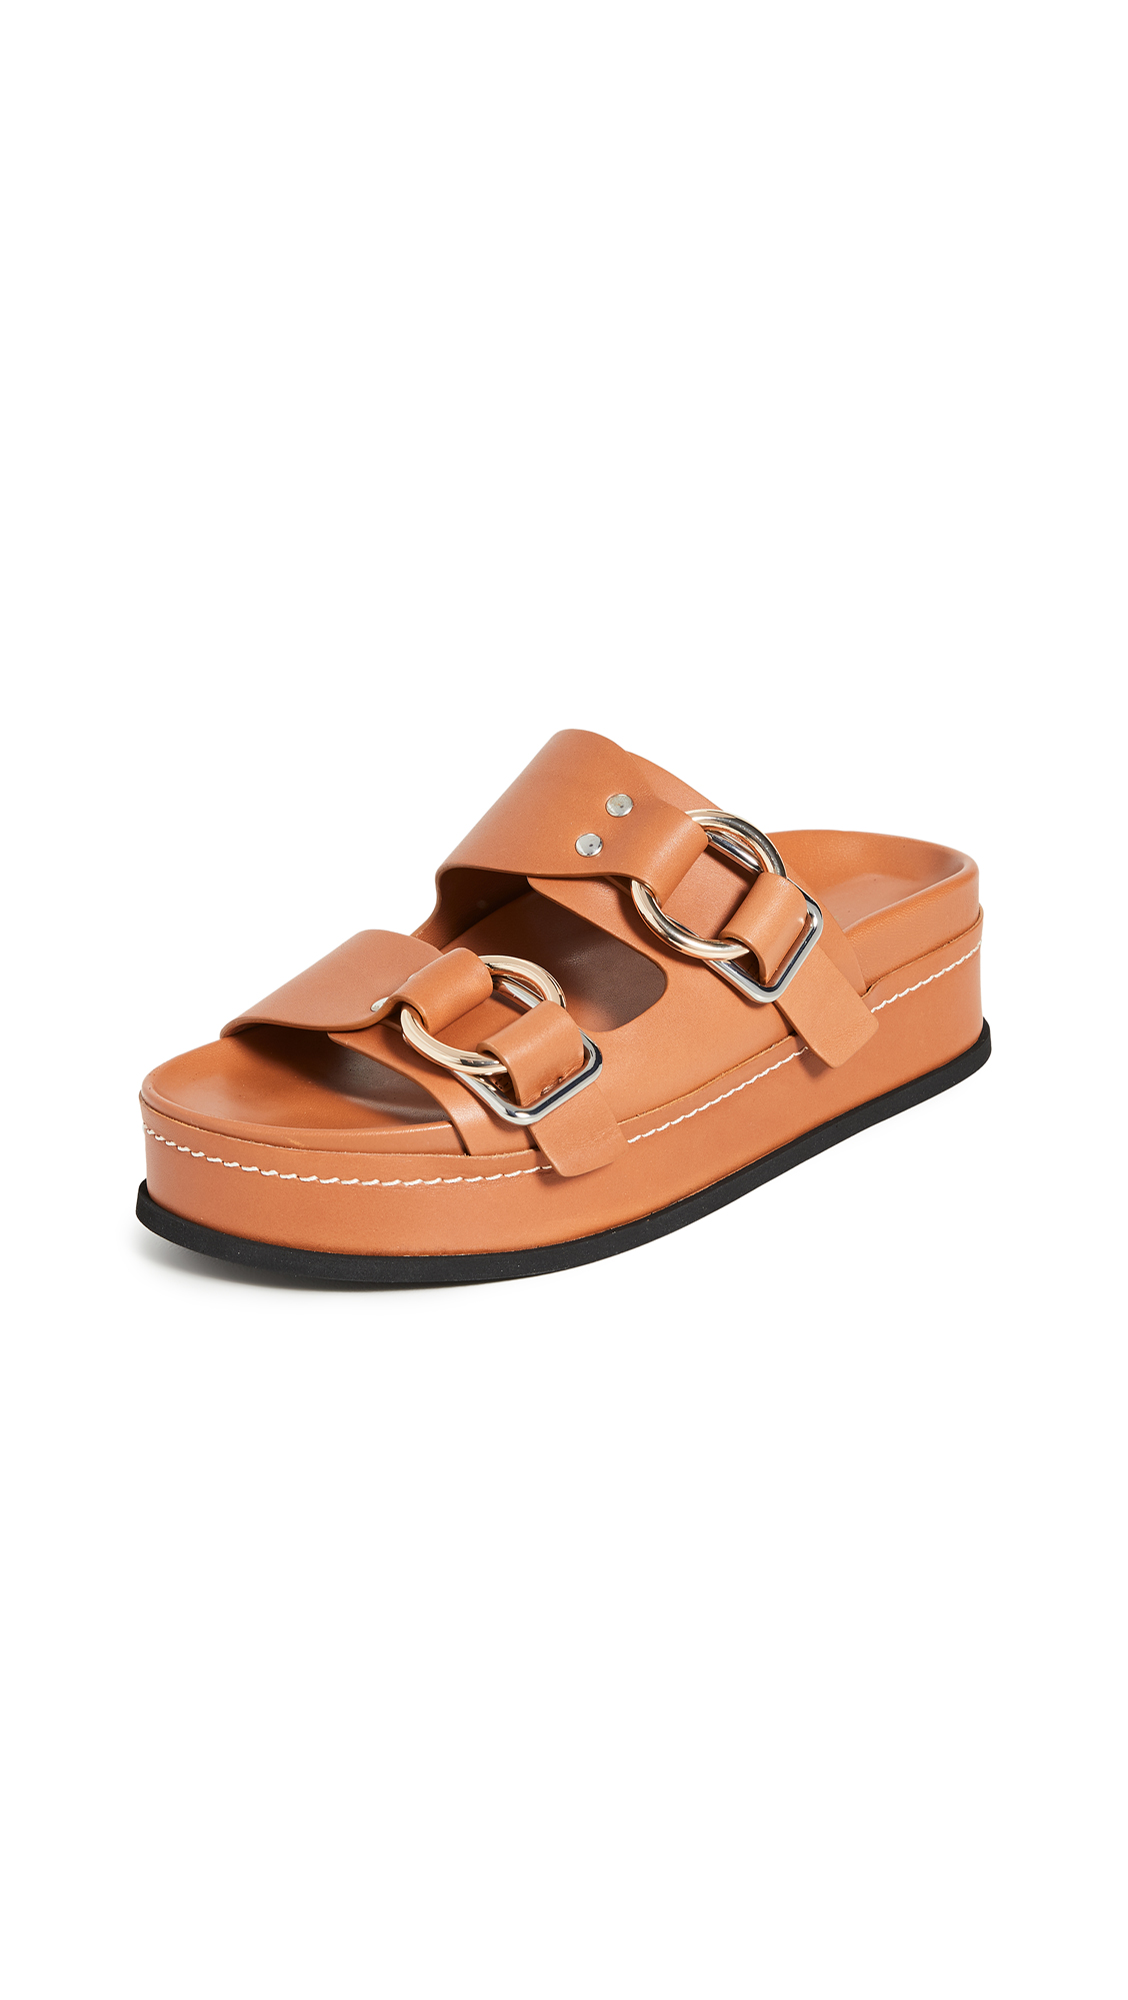 Buy 3.1 Phillip Lim online - photo of 3.1 Phillip Lim Freida Platform Double Buckle Slides